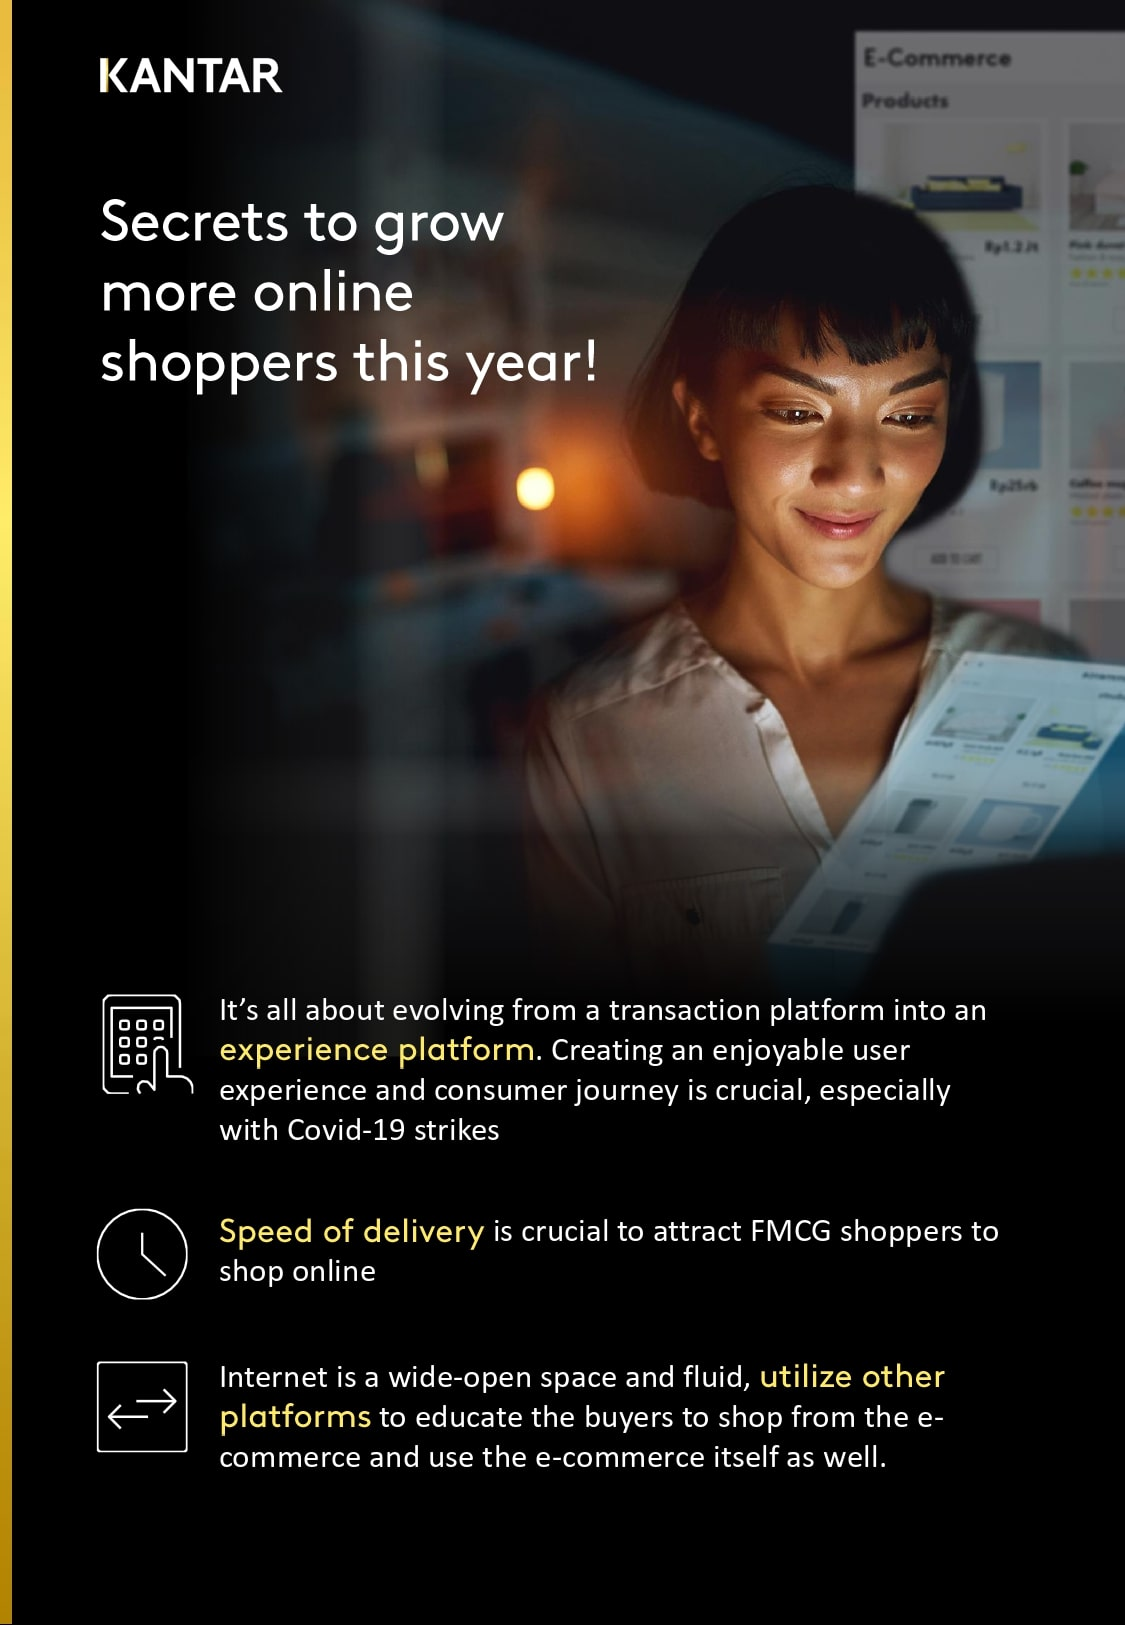 Secrets to Grow More Online Shoppers This Year-13_page-0001-min.jpg